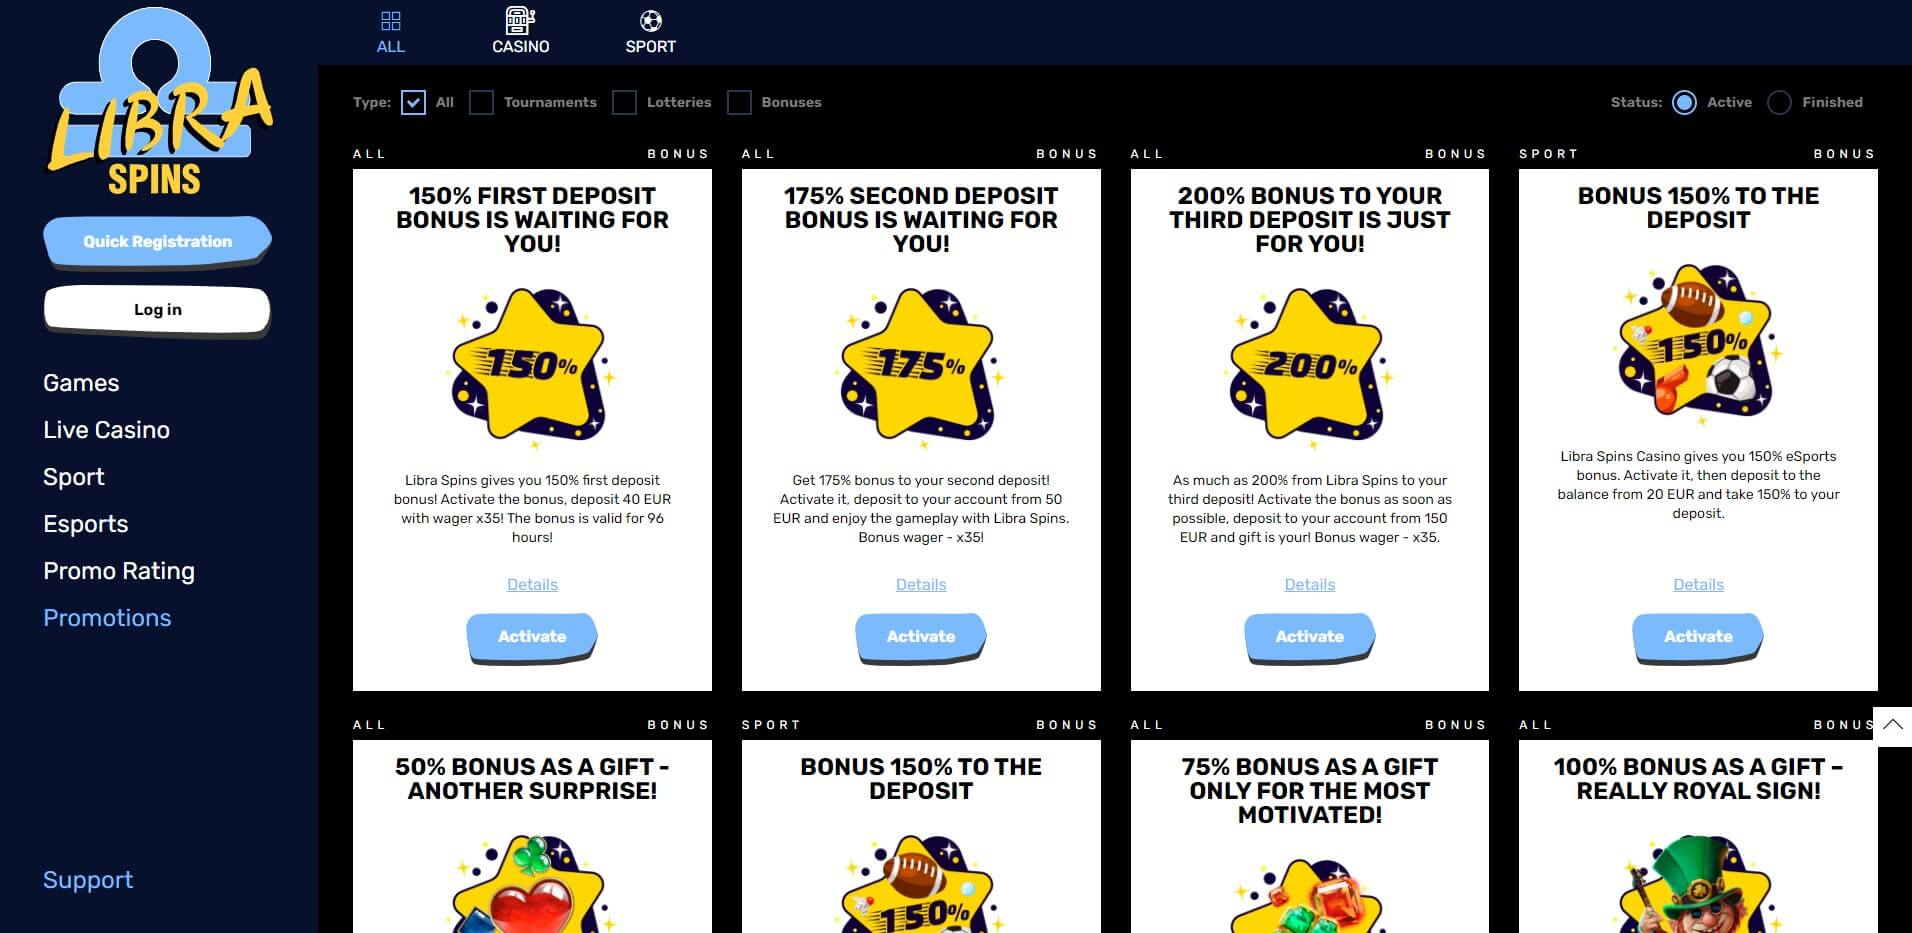 Promotions at Libra Spins Casino